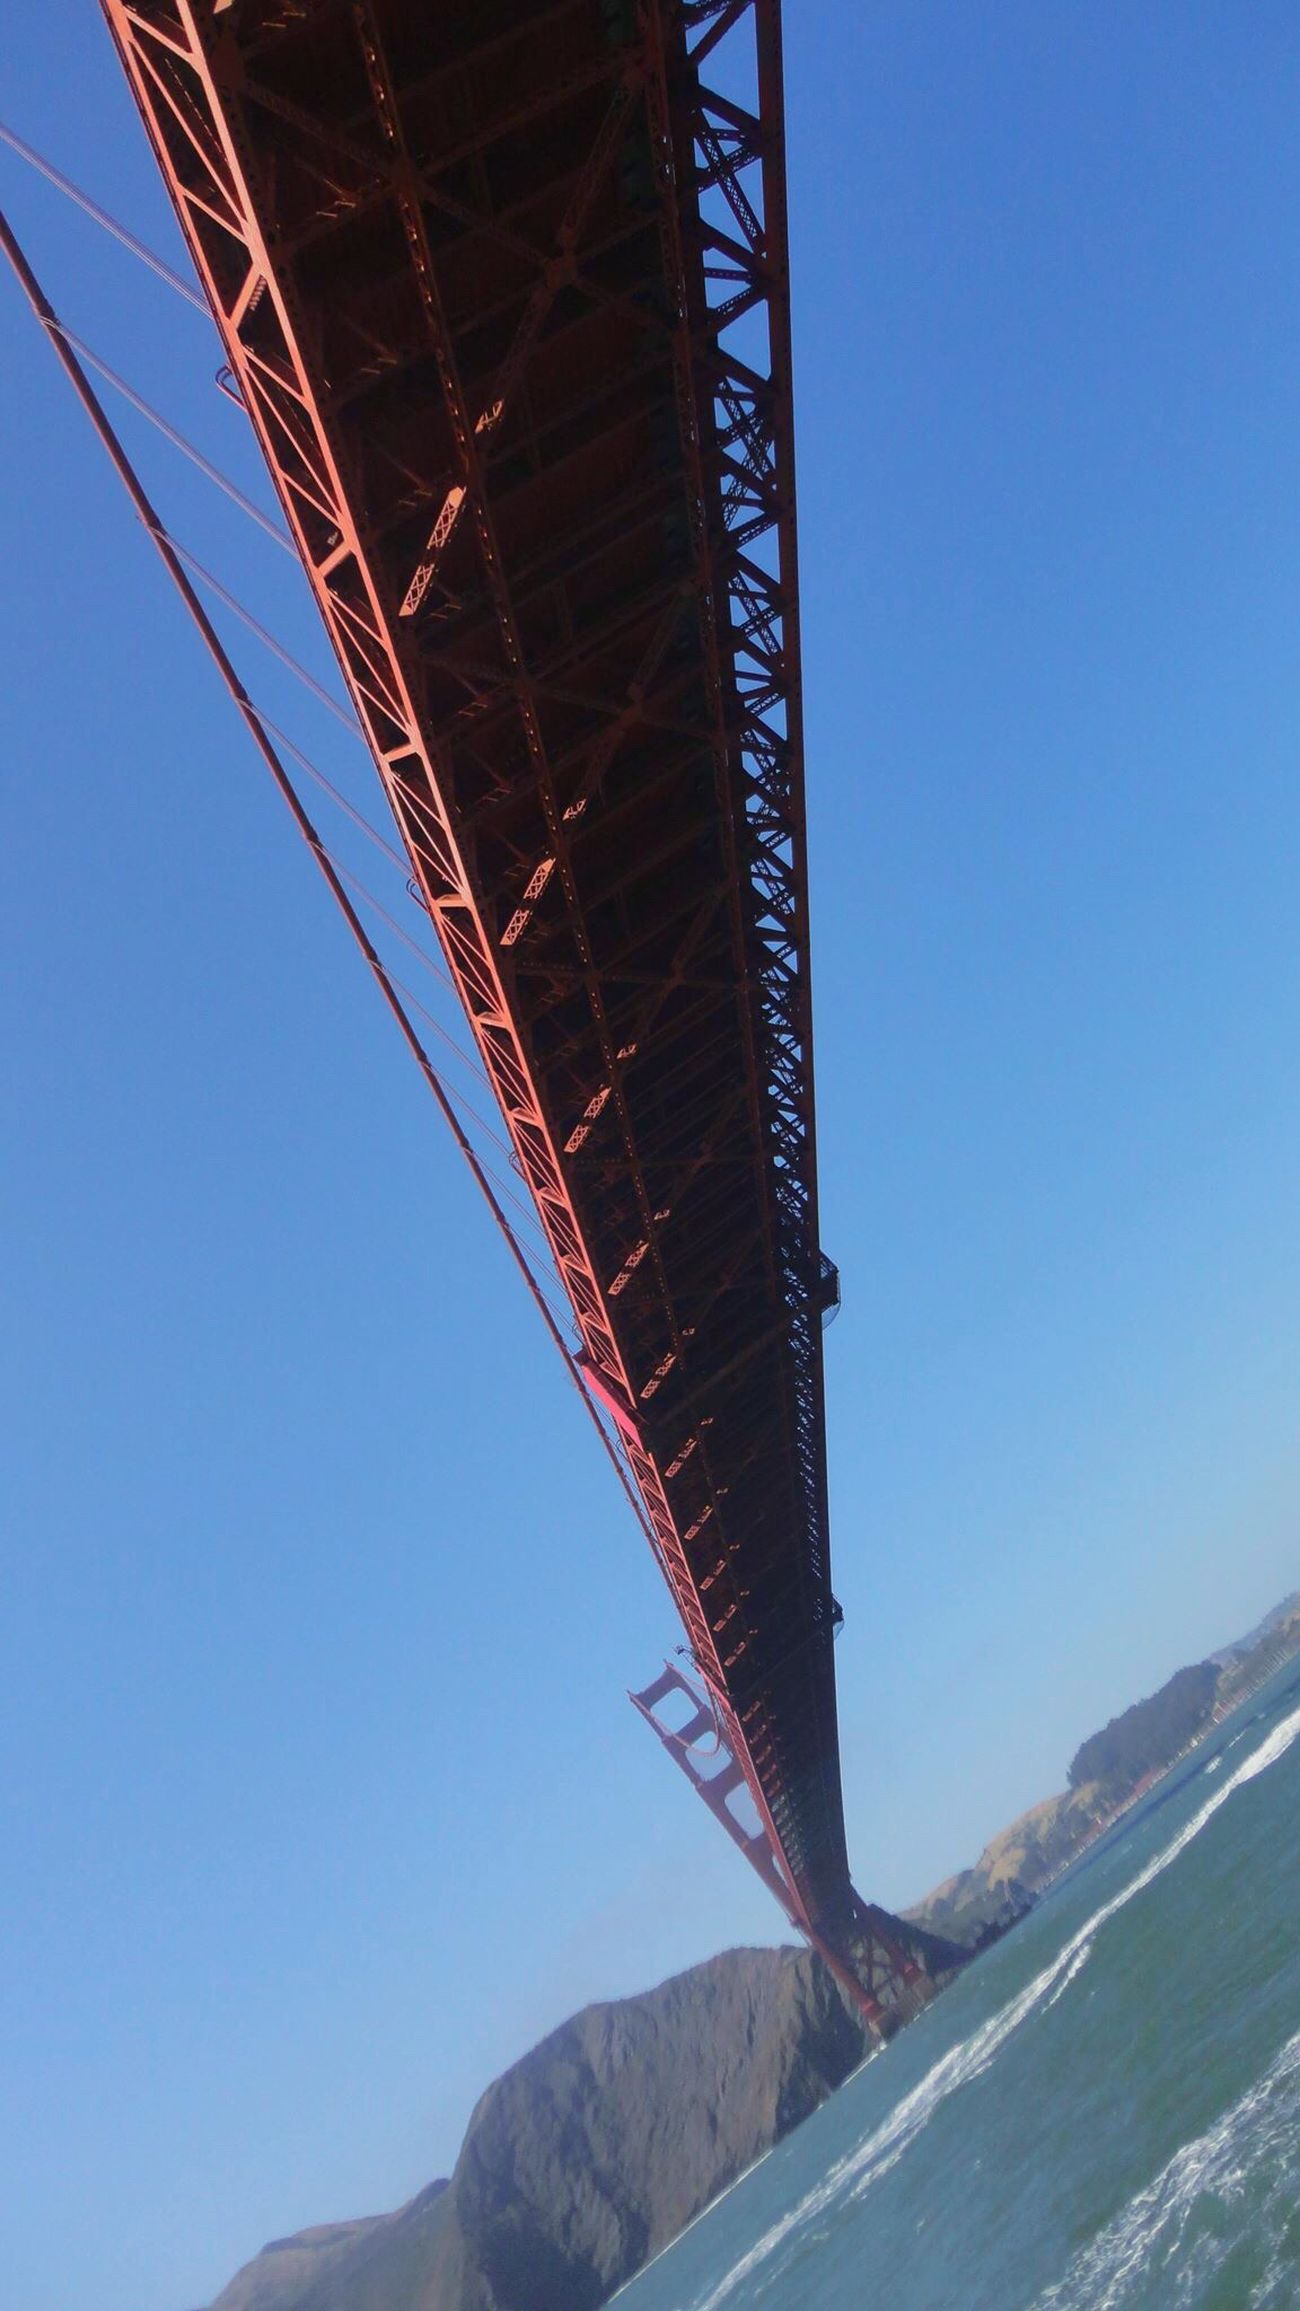 USA Golden Gate Bridge Sanfrancisco Trip America Bridge Sea Red Cruising California USAtrip USA Photos United States Sanfranciscocalifornia On The Sea On The Ship Looking Up Eyeem Bridges Sky And Sea Golden Gate Strait Bridge View Long Bridge サンフランシスコ アメリカ カリフォルニア